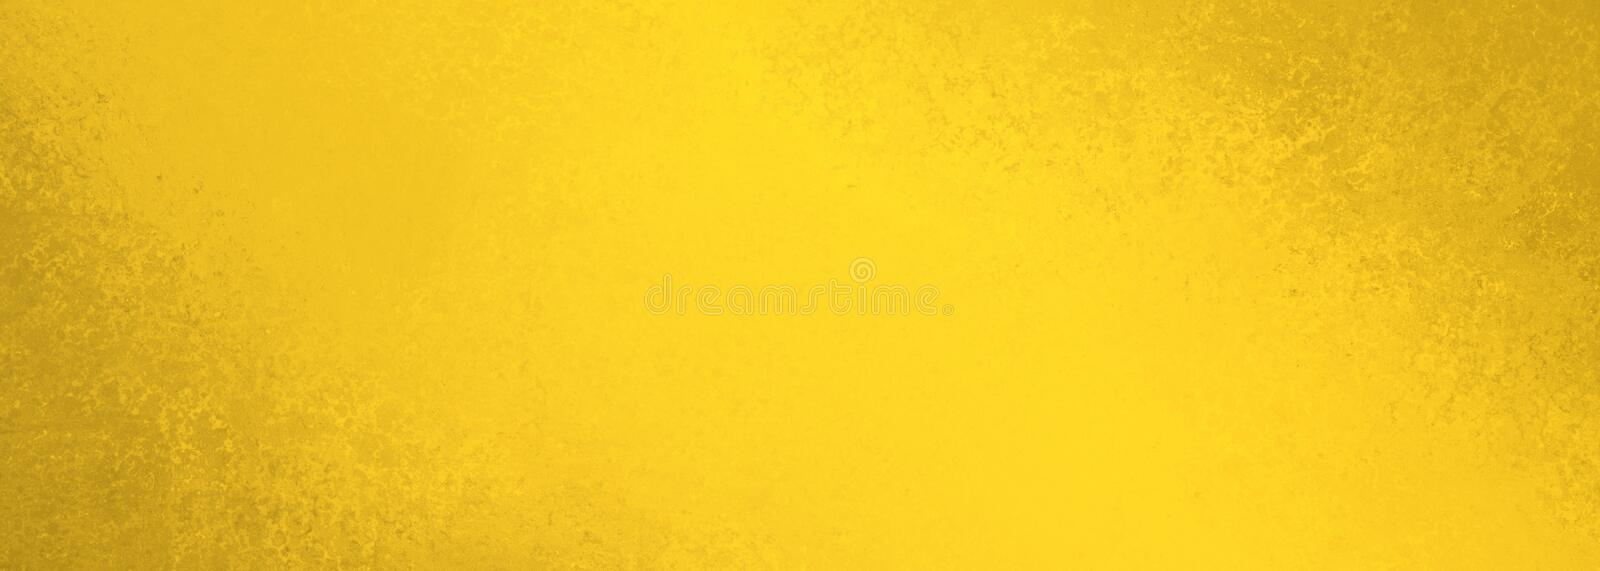 Old yellow background texture and distressed brown border grunge in vintage paper illustration stock images